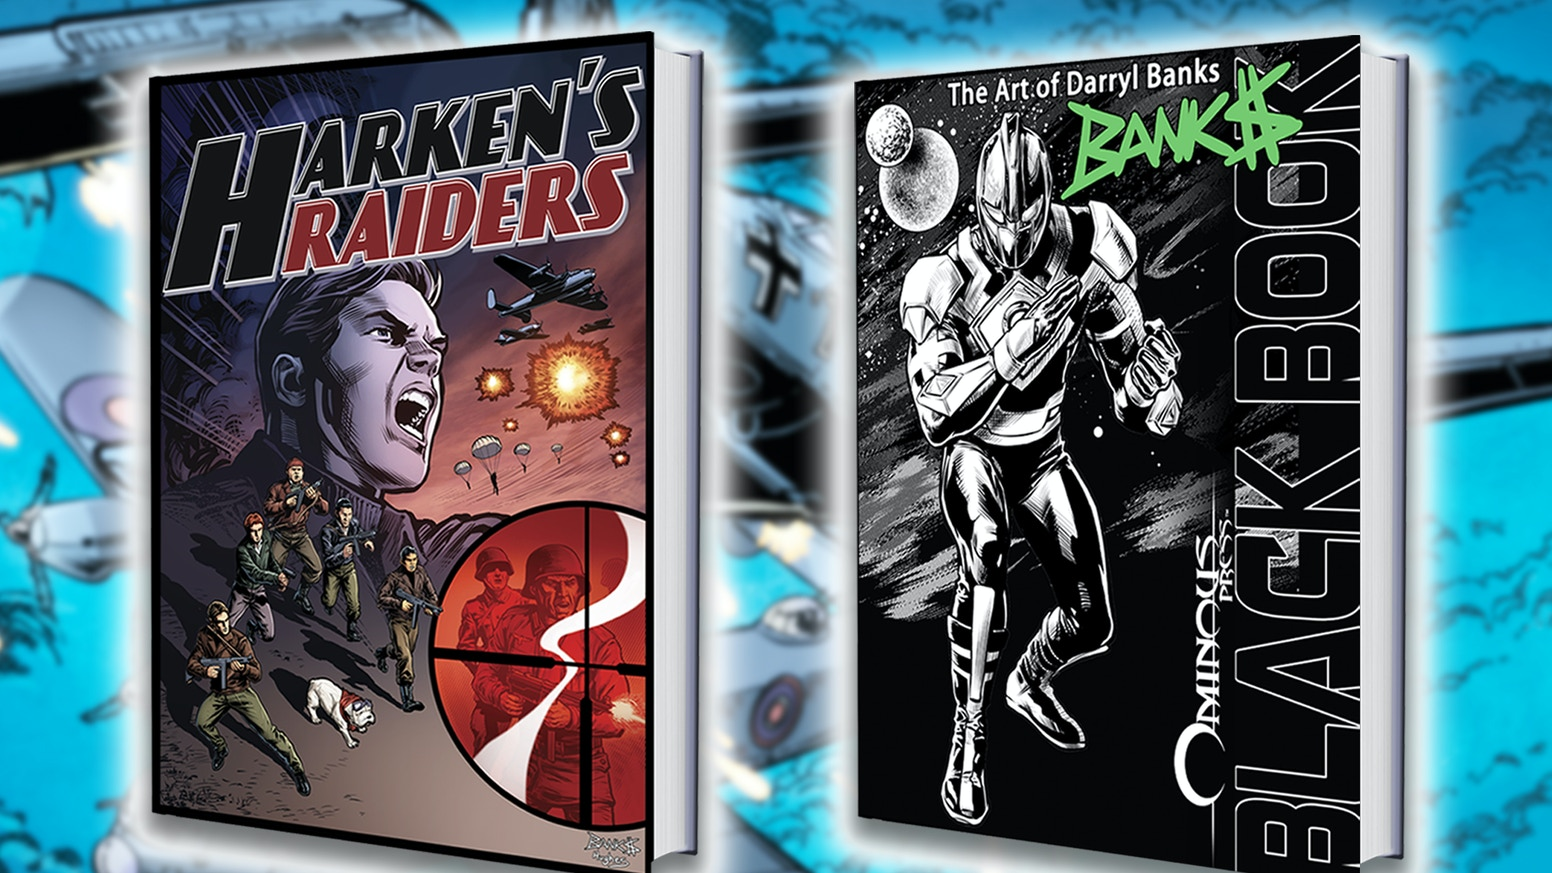 Green Lantern Kyle Rayner creators join forces again for graphic novel, art book.